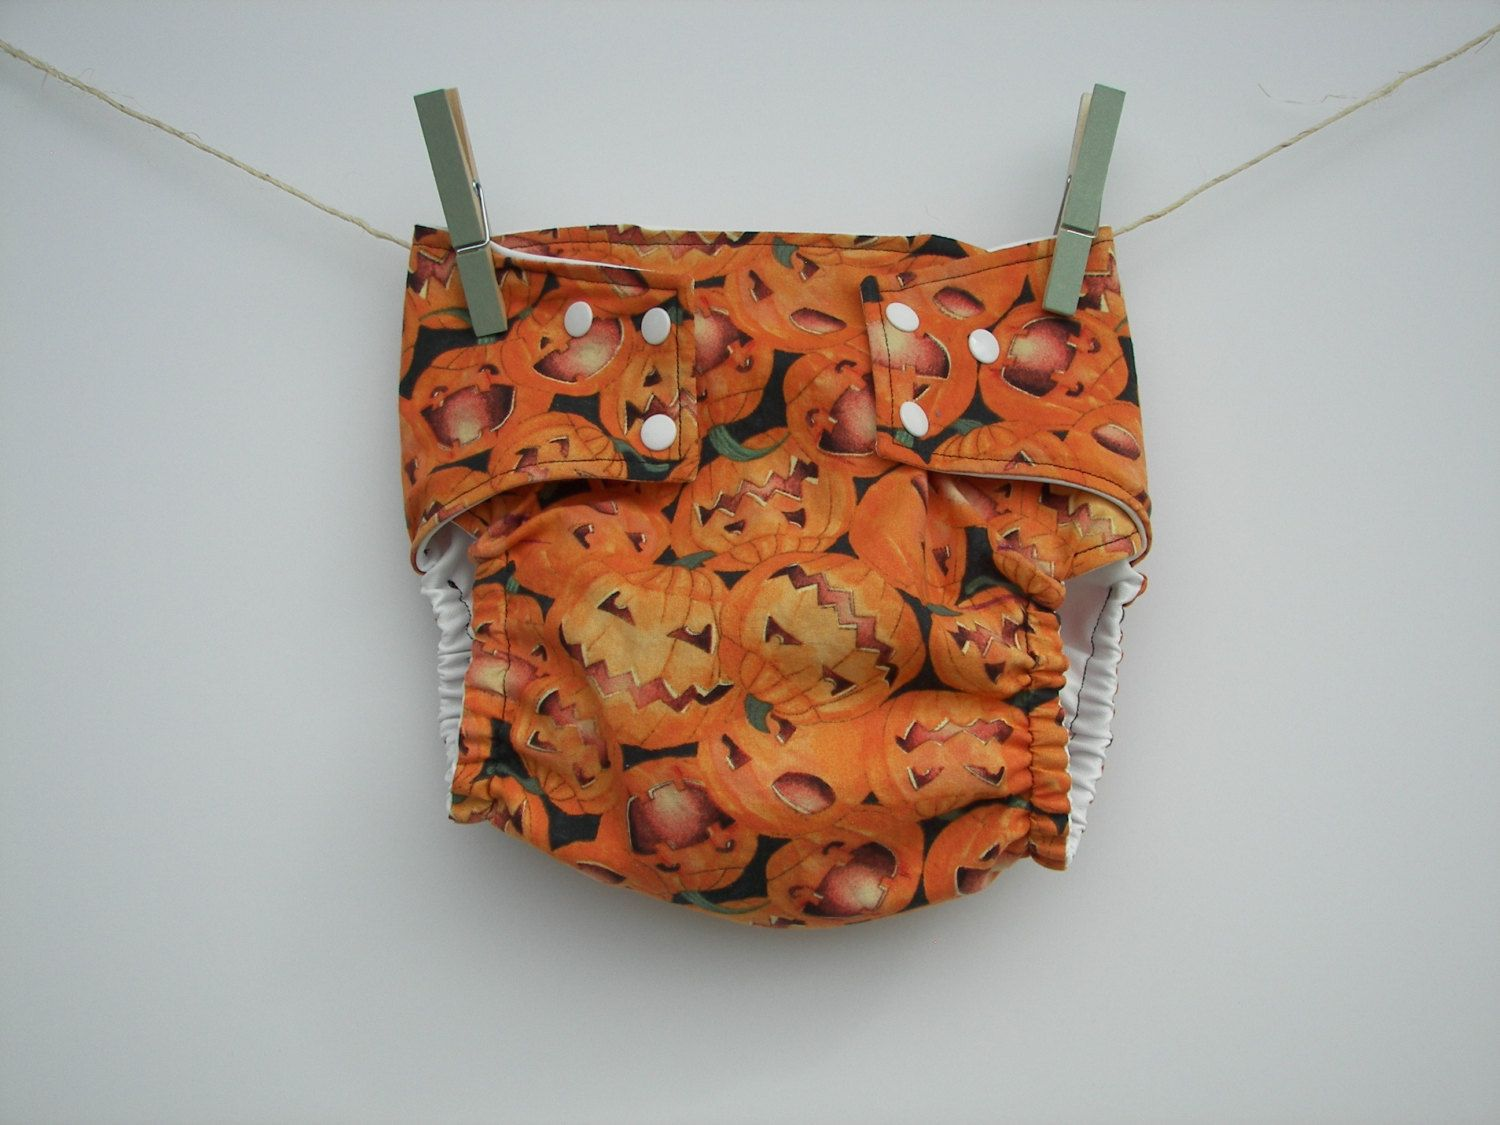 CUSTOM Water Proof Diaper Cover - Fall Pumpkin Halloween - One Size or Any Size with Fabric of Your Choice by SewSouthernMade on Etsy - CLICK PICTURE TO ORDER or go to Etsy.com/shop/SewSouthernMade